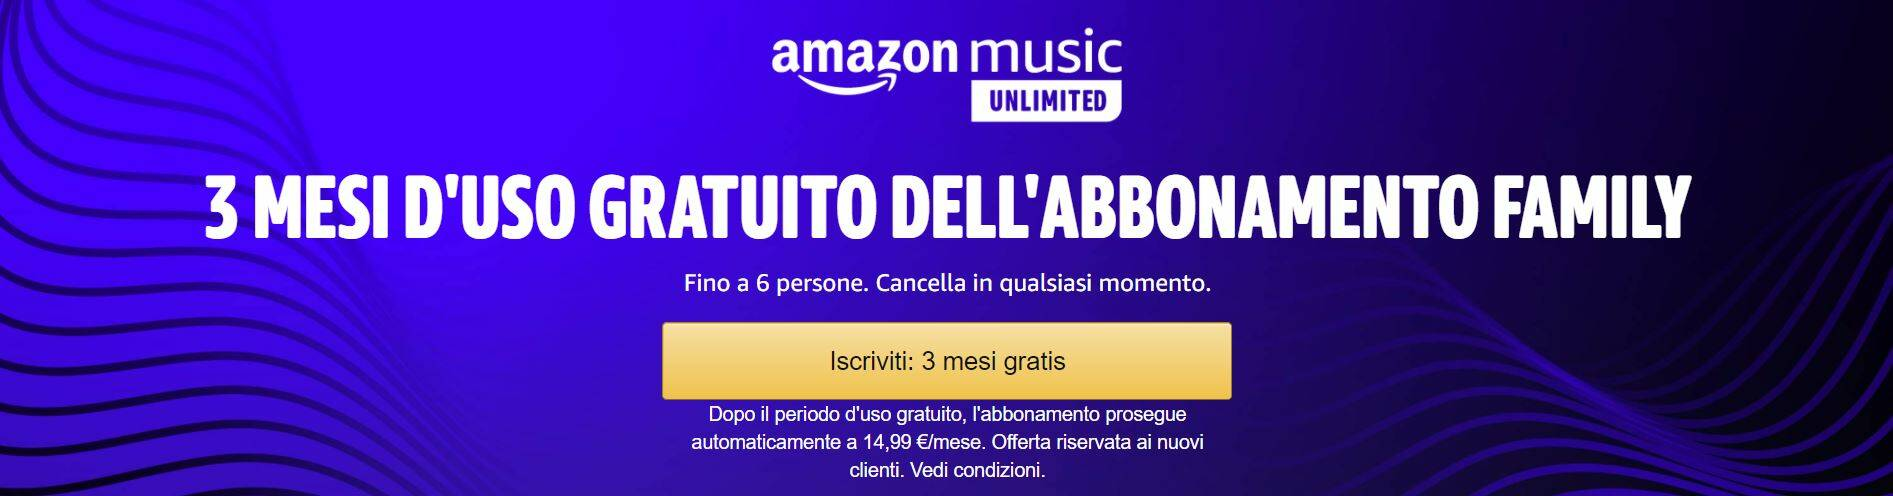 banner music unlimited family